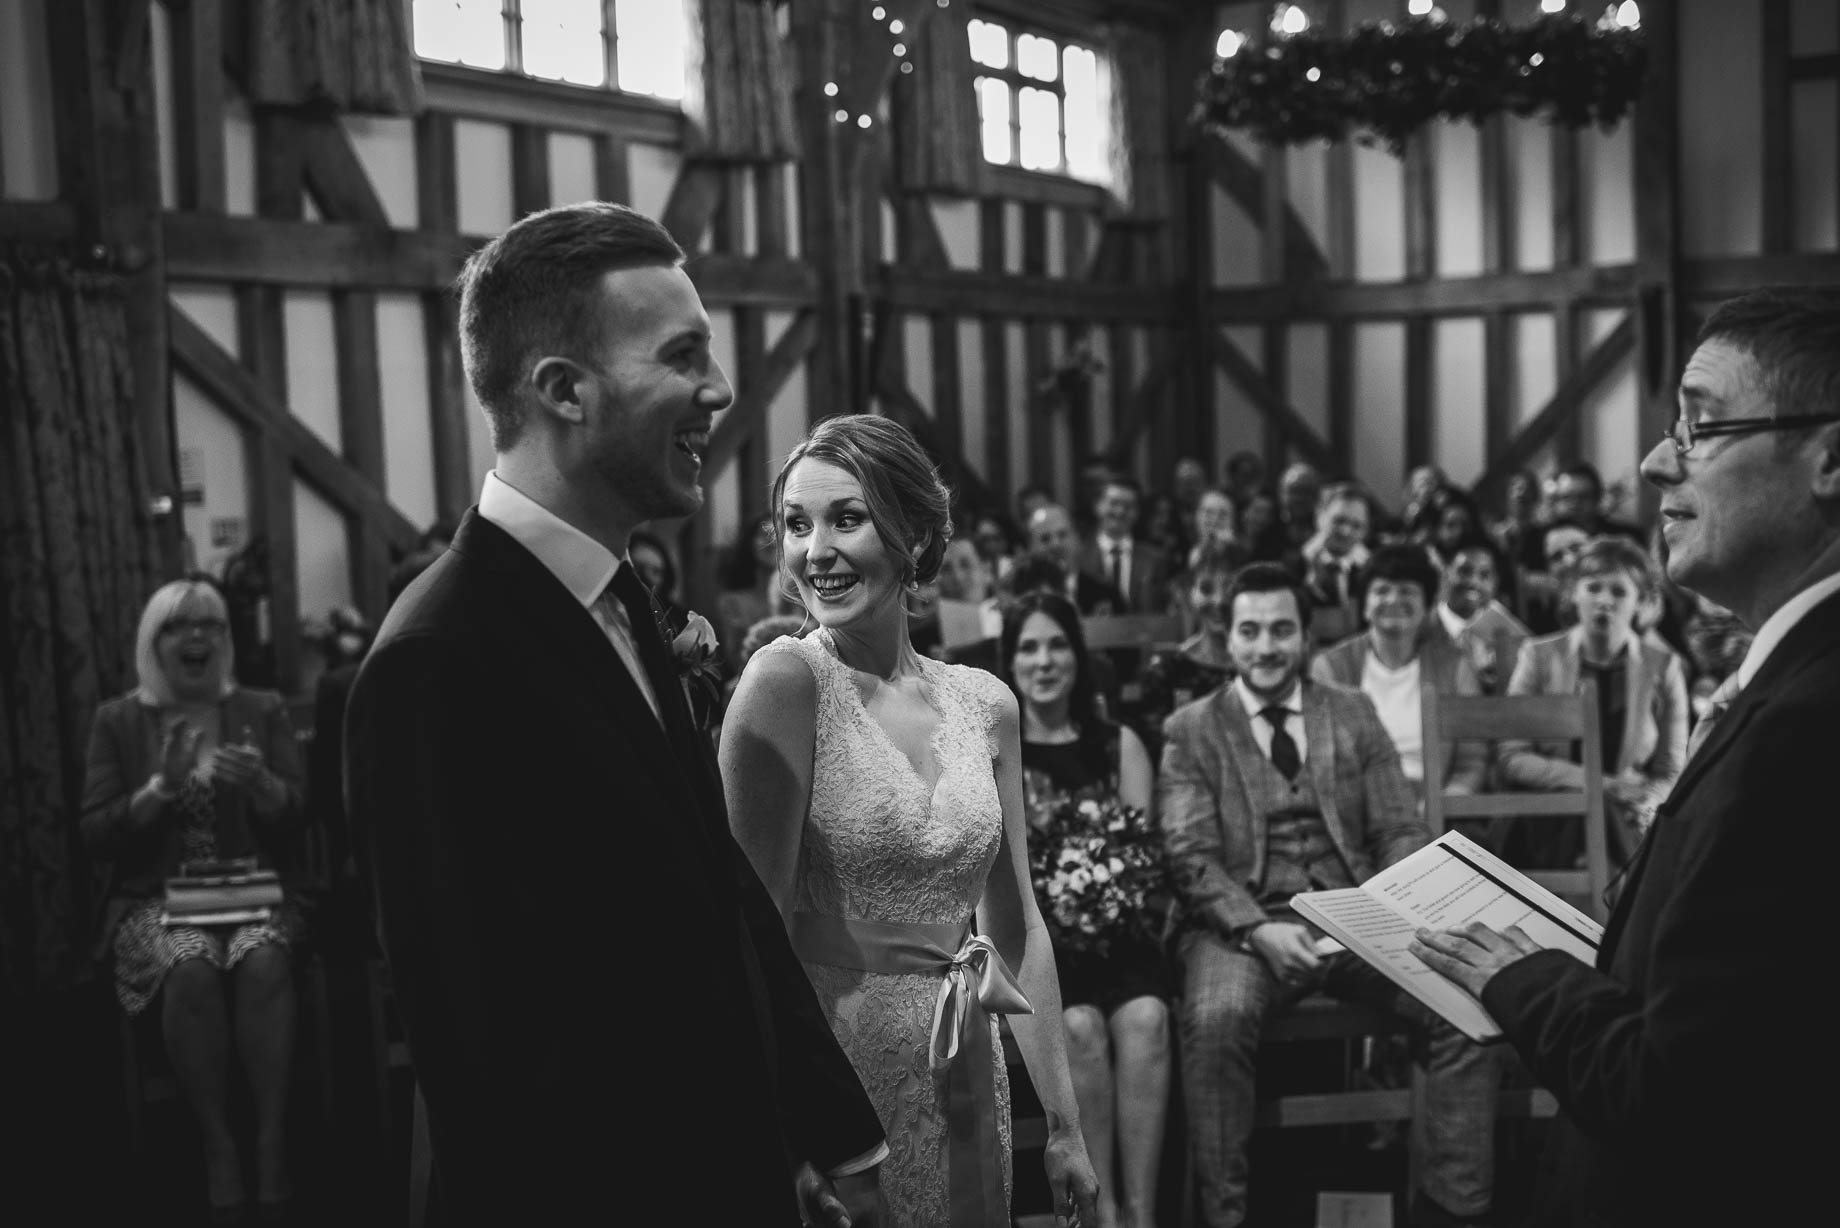 Surrey Wedding Photography by Guy Collier - Becca and James (45 of 145)